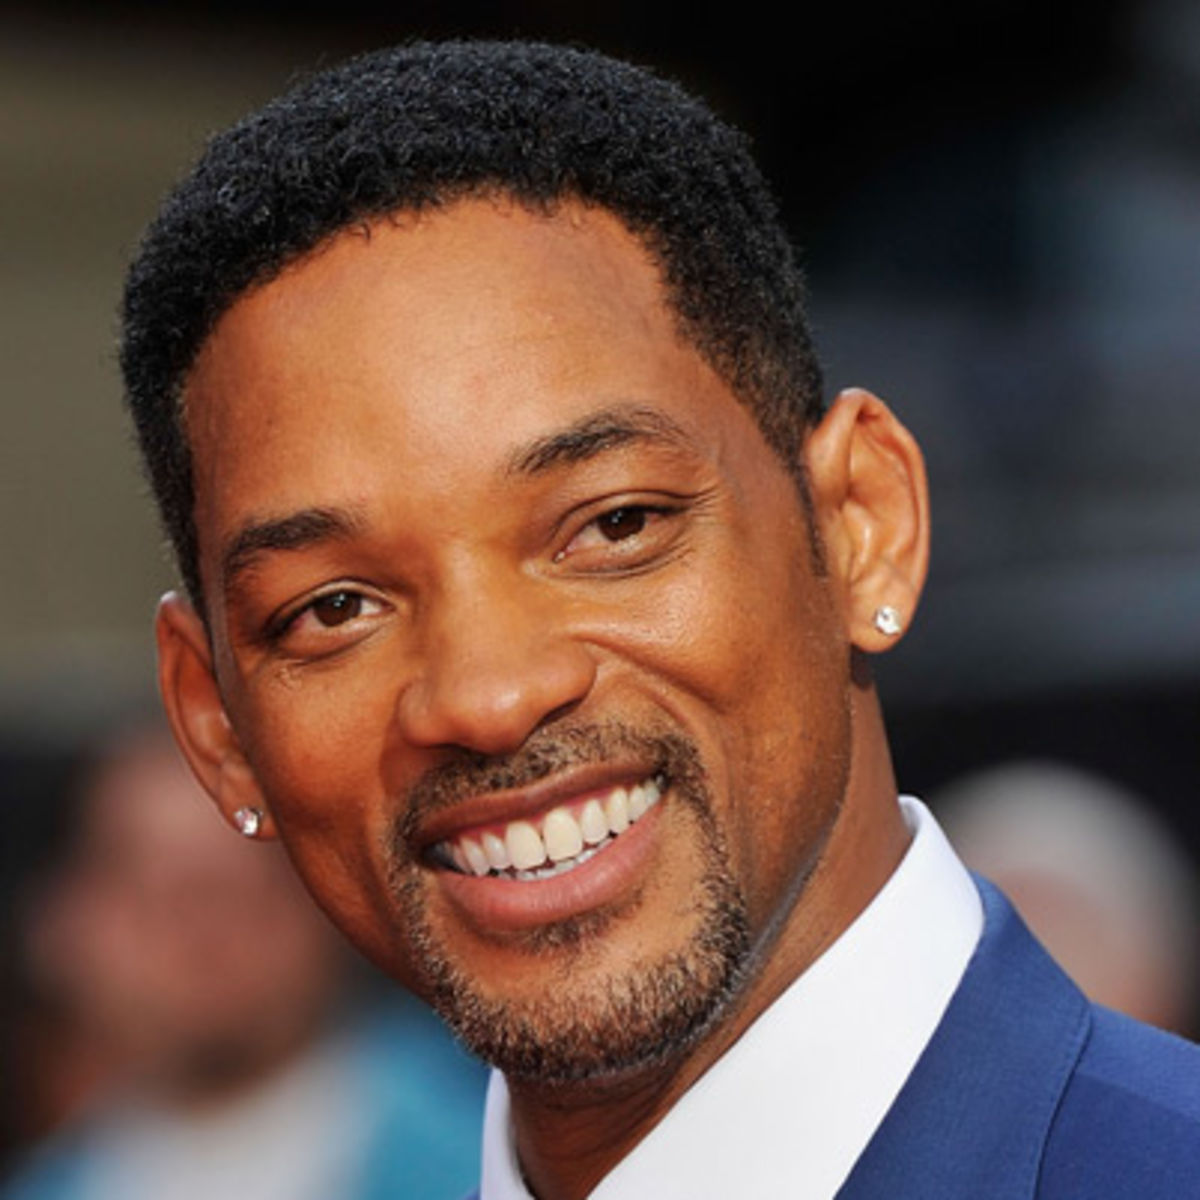 Will Smith Invited to British seaside resort on Oscars weekend